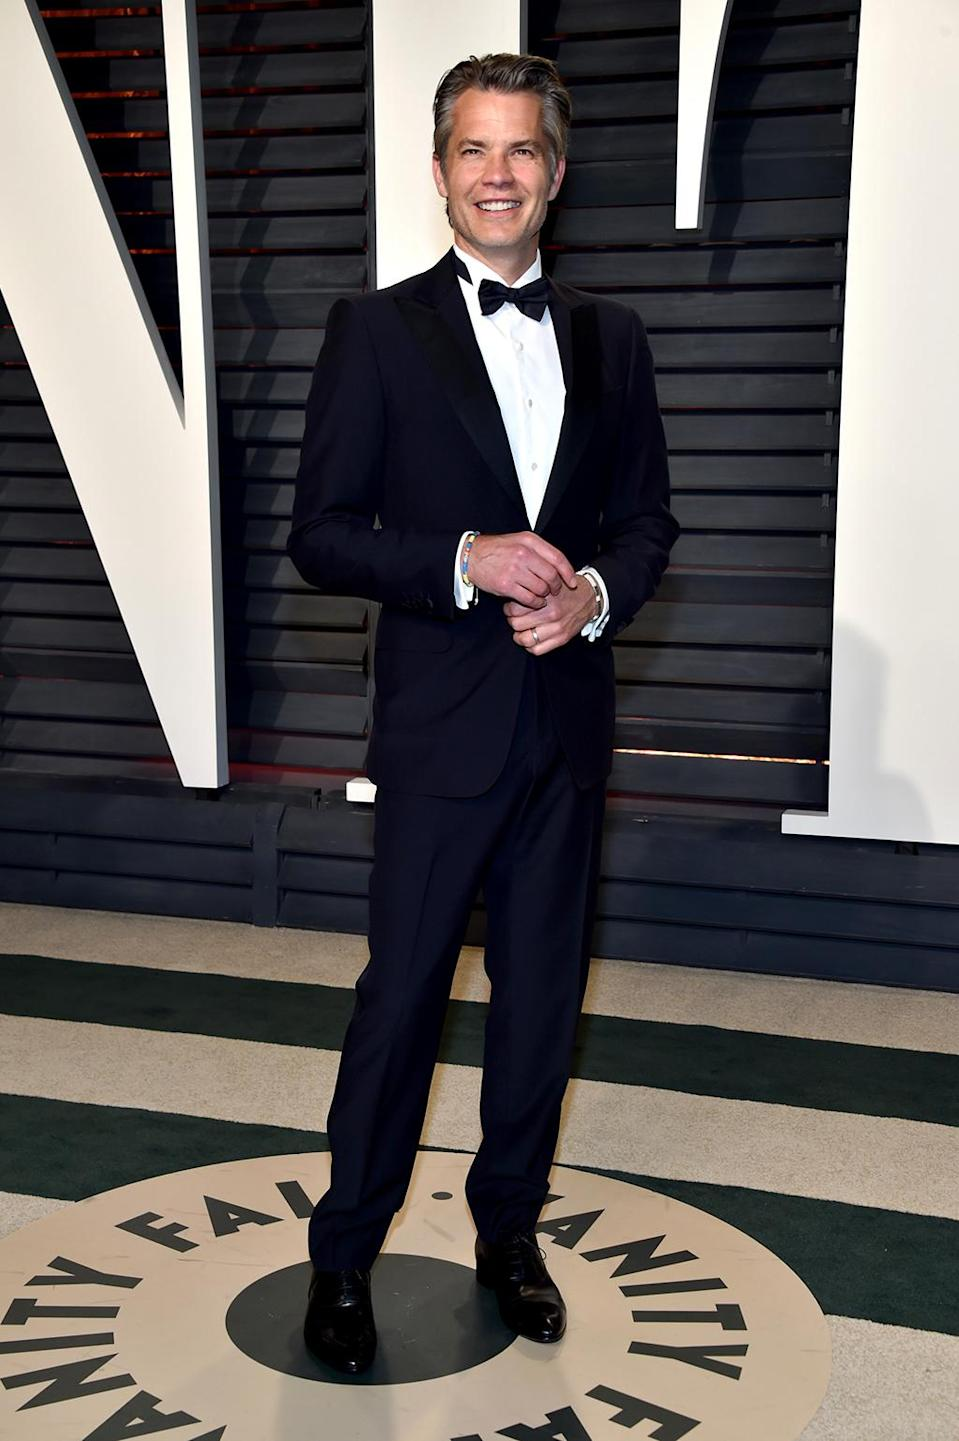 <p>Timothy Olyphant attends the 2017 Vanity Fair Oscar Party hosted by Graydon Carter at Wallis Annenberg Center for the Performing Arts on February 26, 2017 in Beverly Hills, California. (Photo by Pascal Le Segretain/Getty Images) </p>